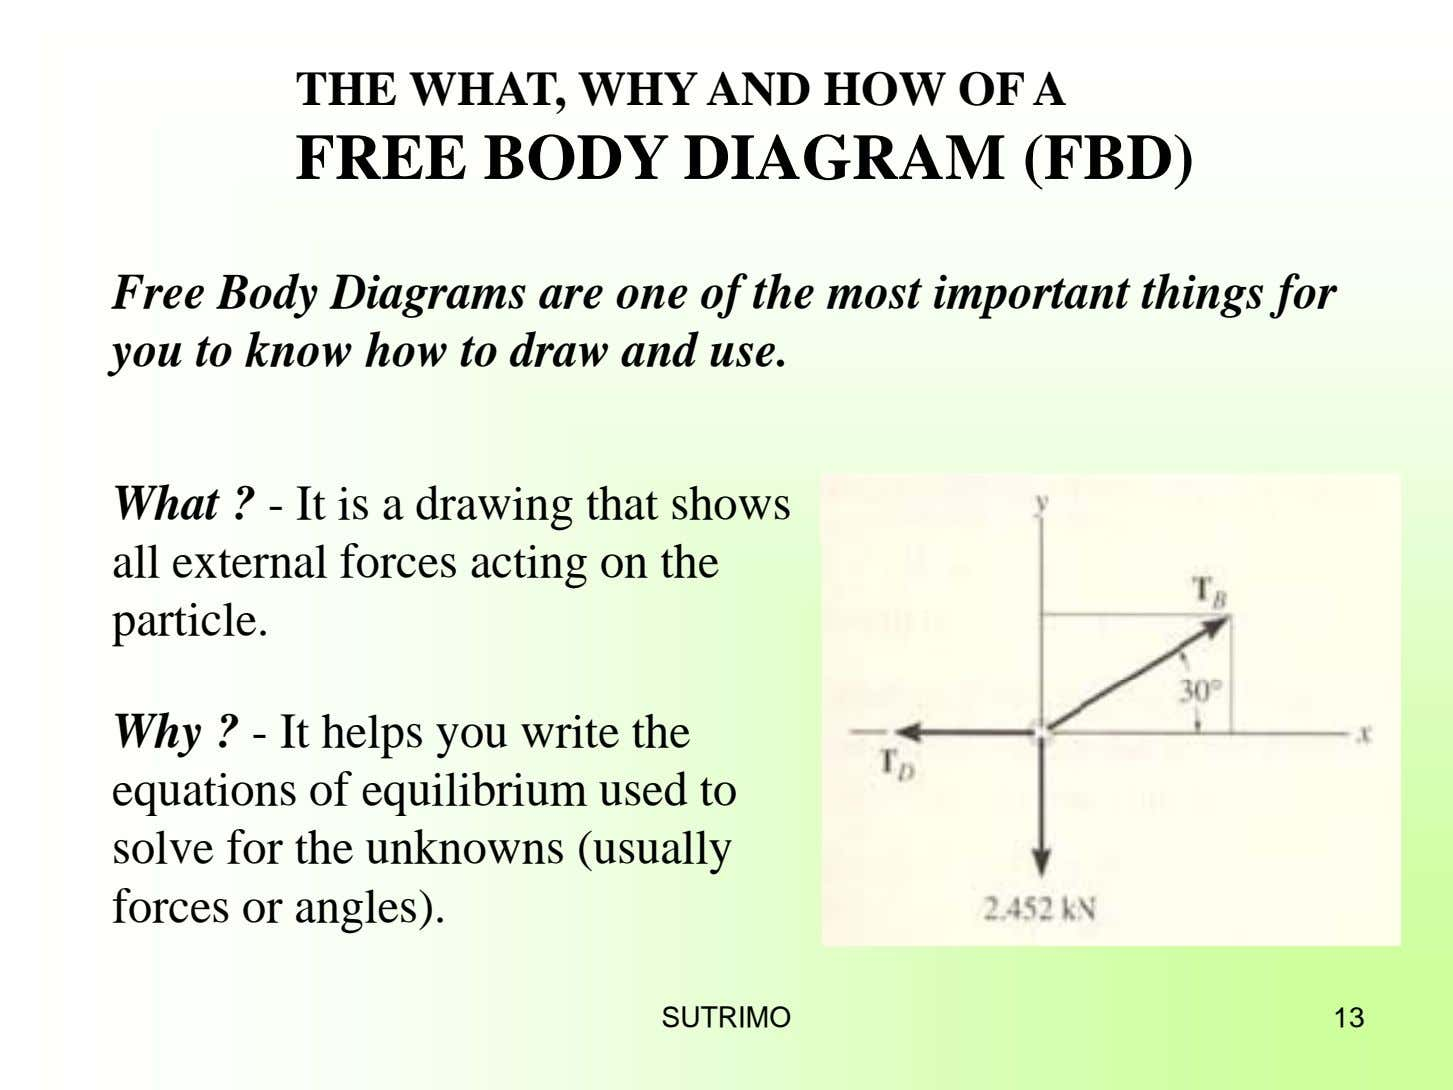 THE WHAT, WHY AND HOW OF A FREE BODY DIAGRAM (FBD) Free Body Diagrams are